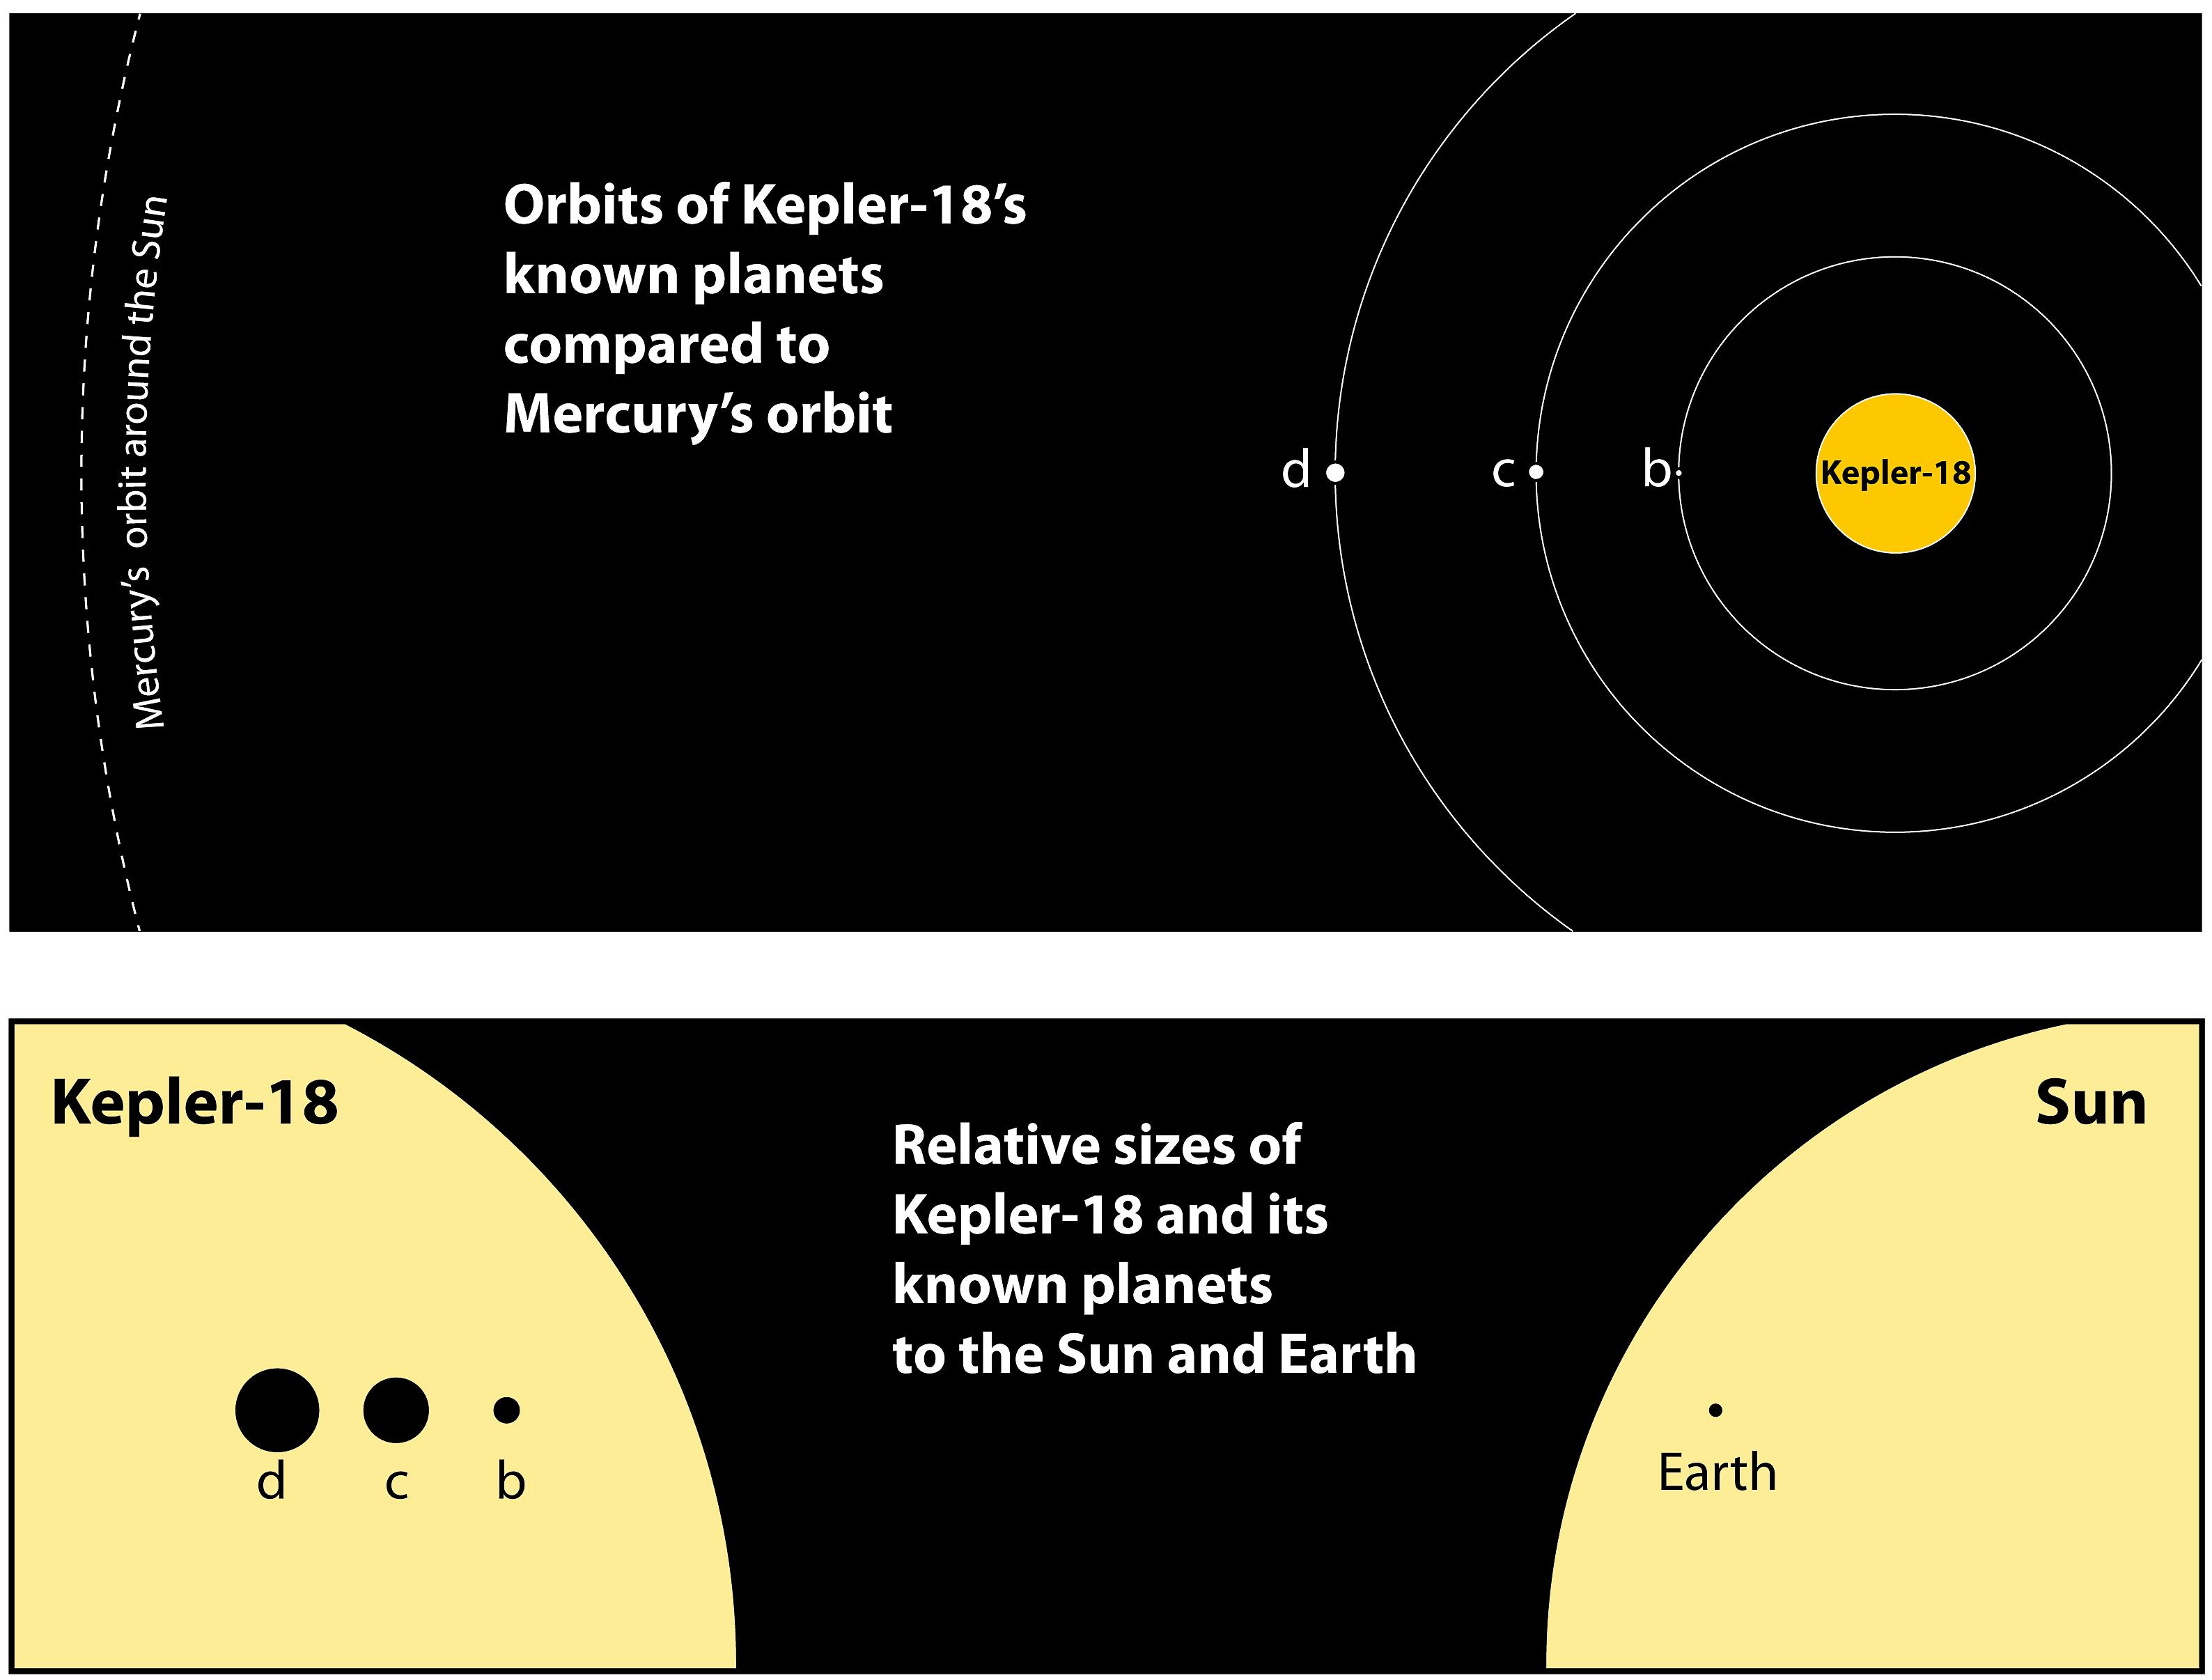 Three Planets Found Around Kepler-18 Star